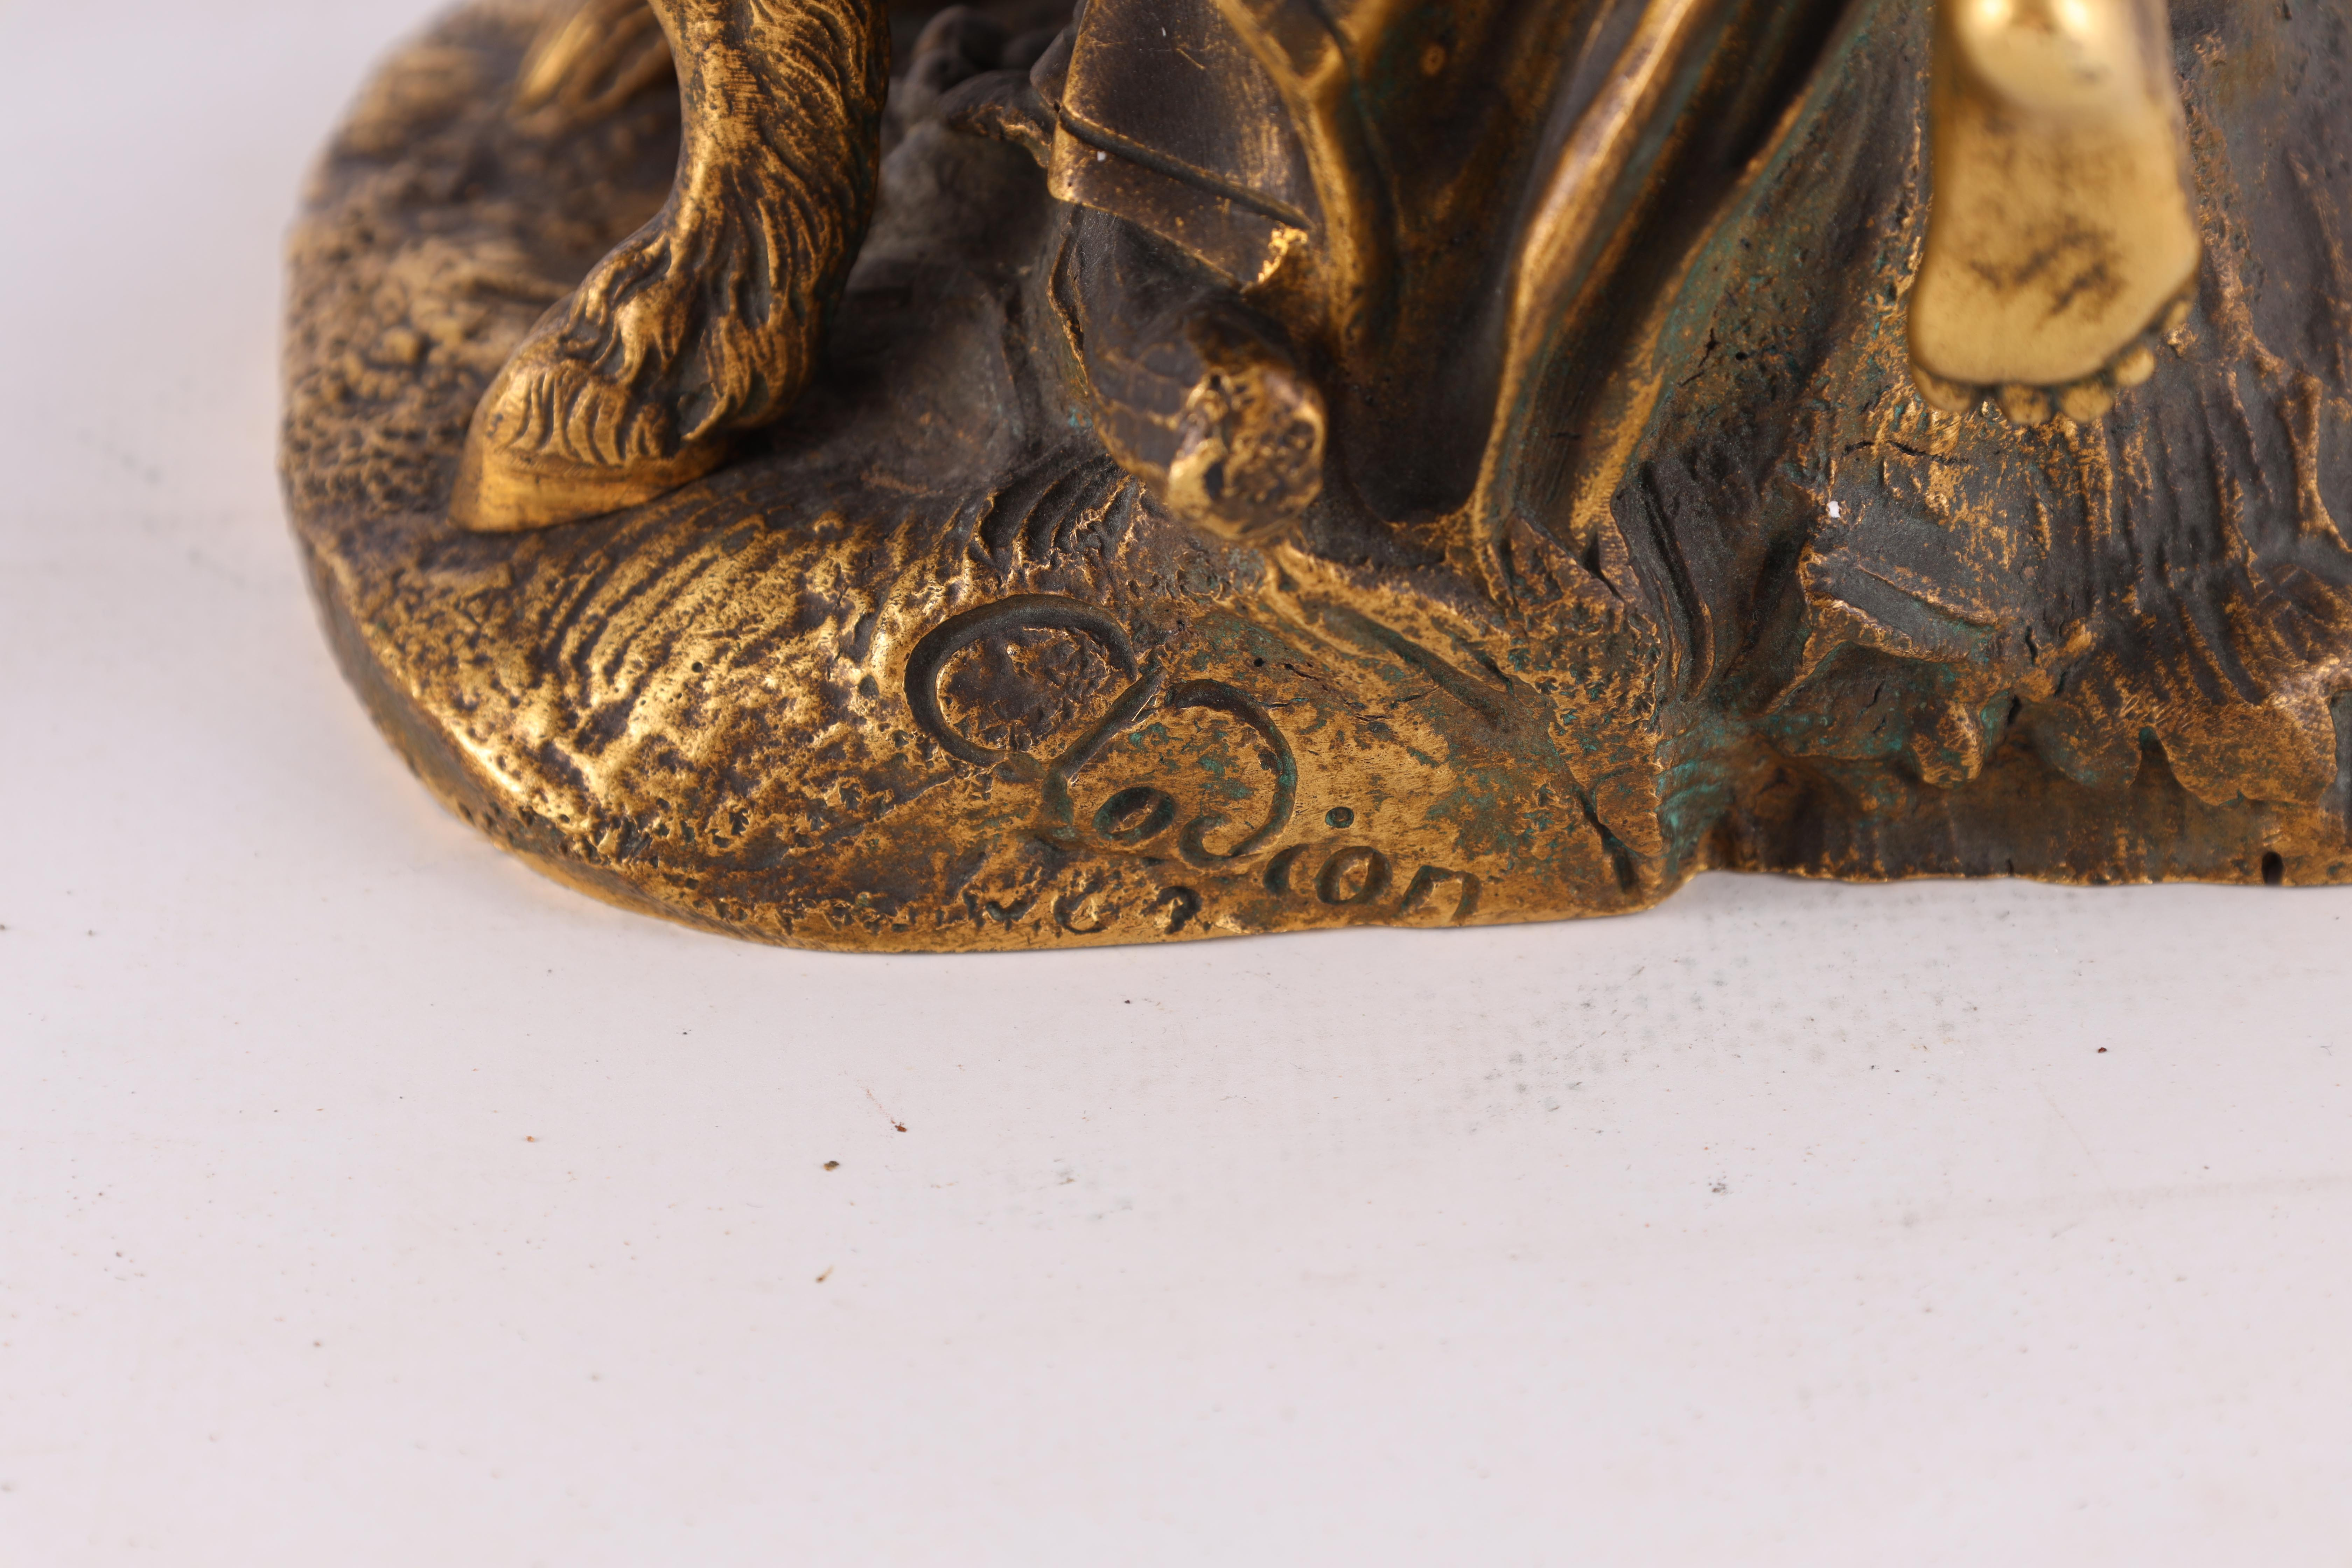 AFTER MICHAEL CLAUDE CLODION A LATE 19TH CENTURY FRENCH GILT BRONZE SCULPTURE titled 'Bacchanalia' - Image 5 of 10